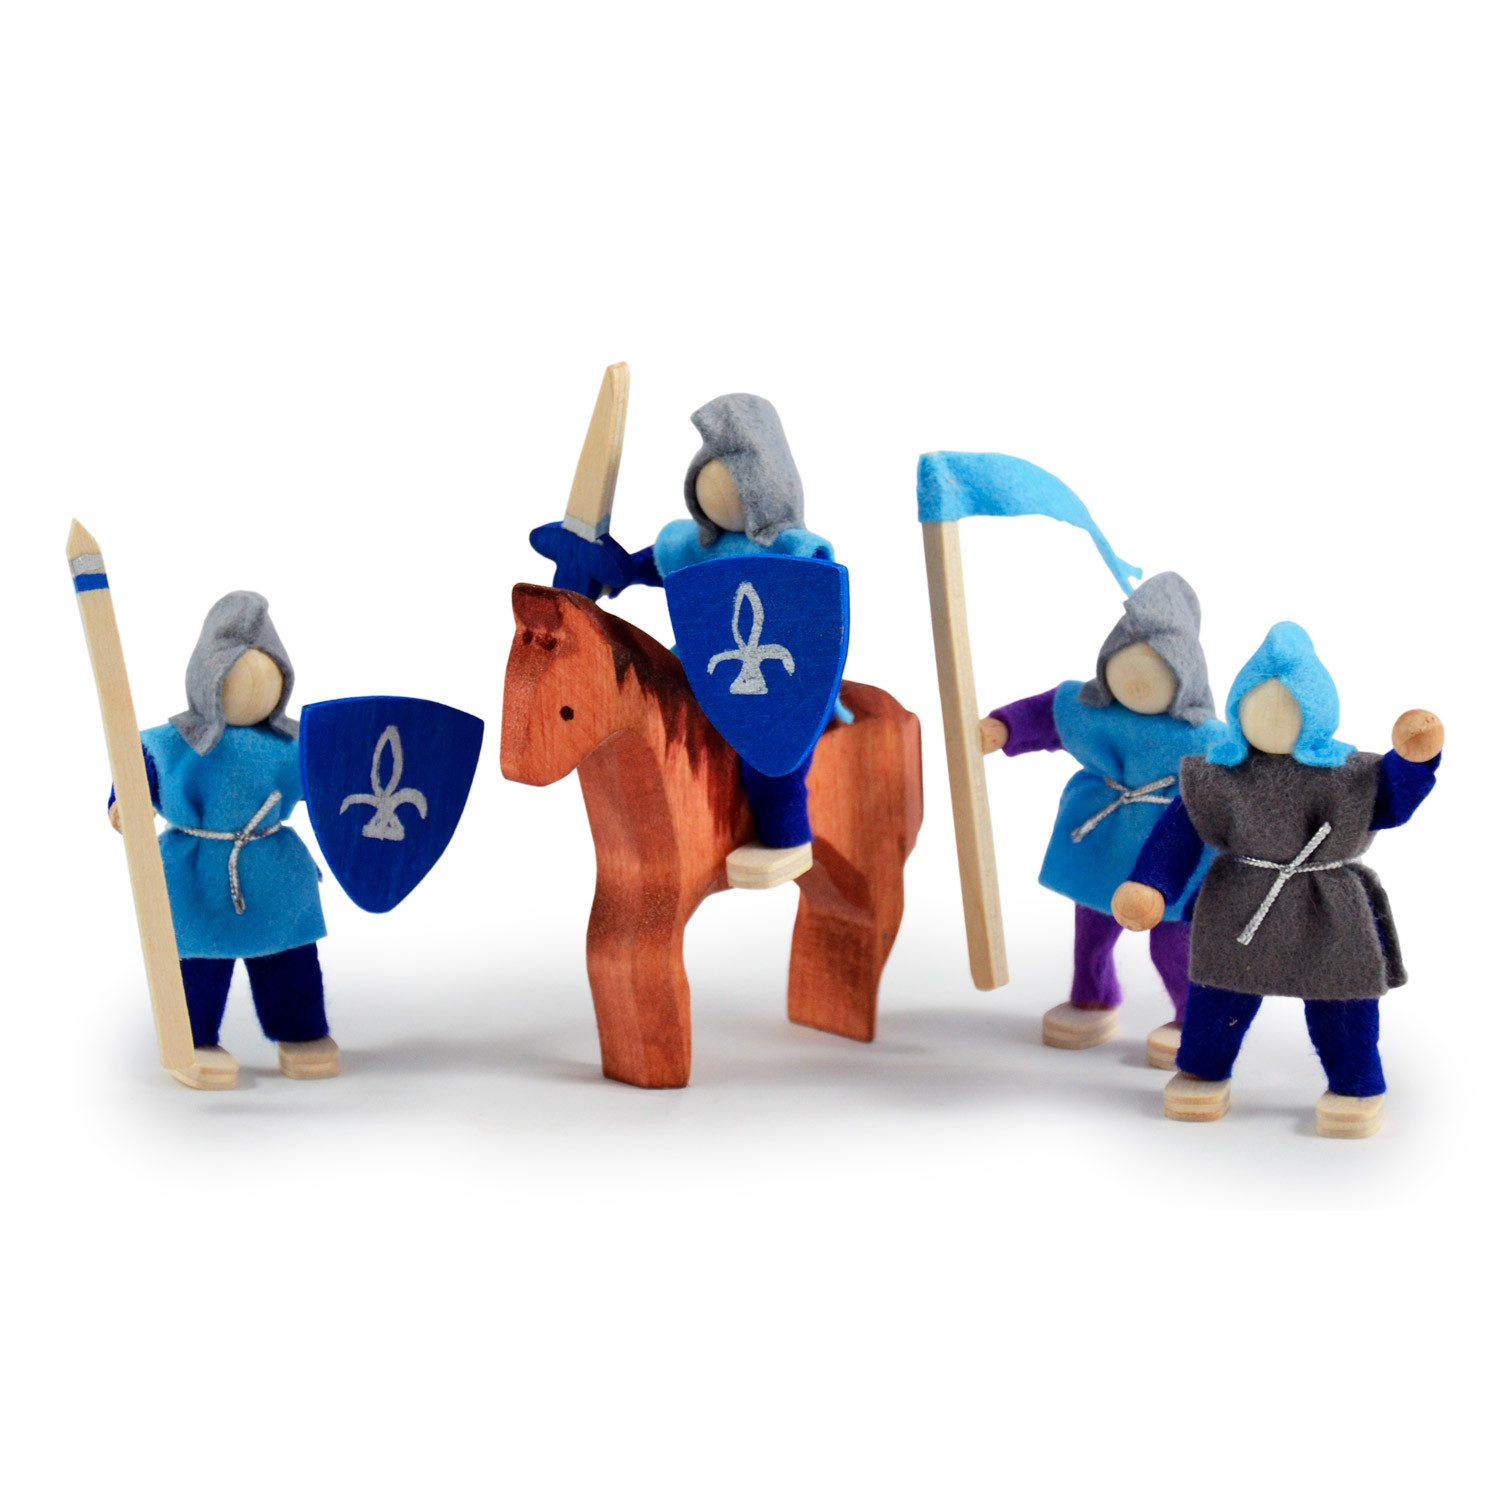 Two Wooden Knights' Horses